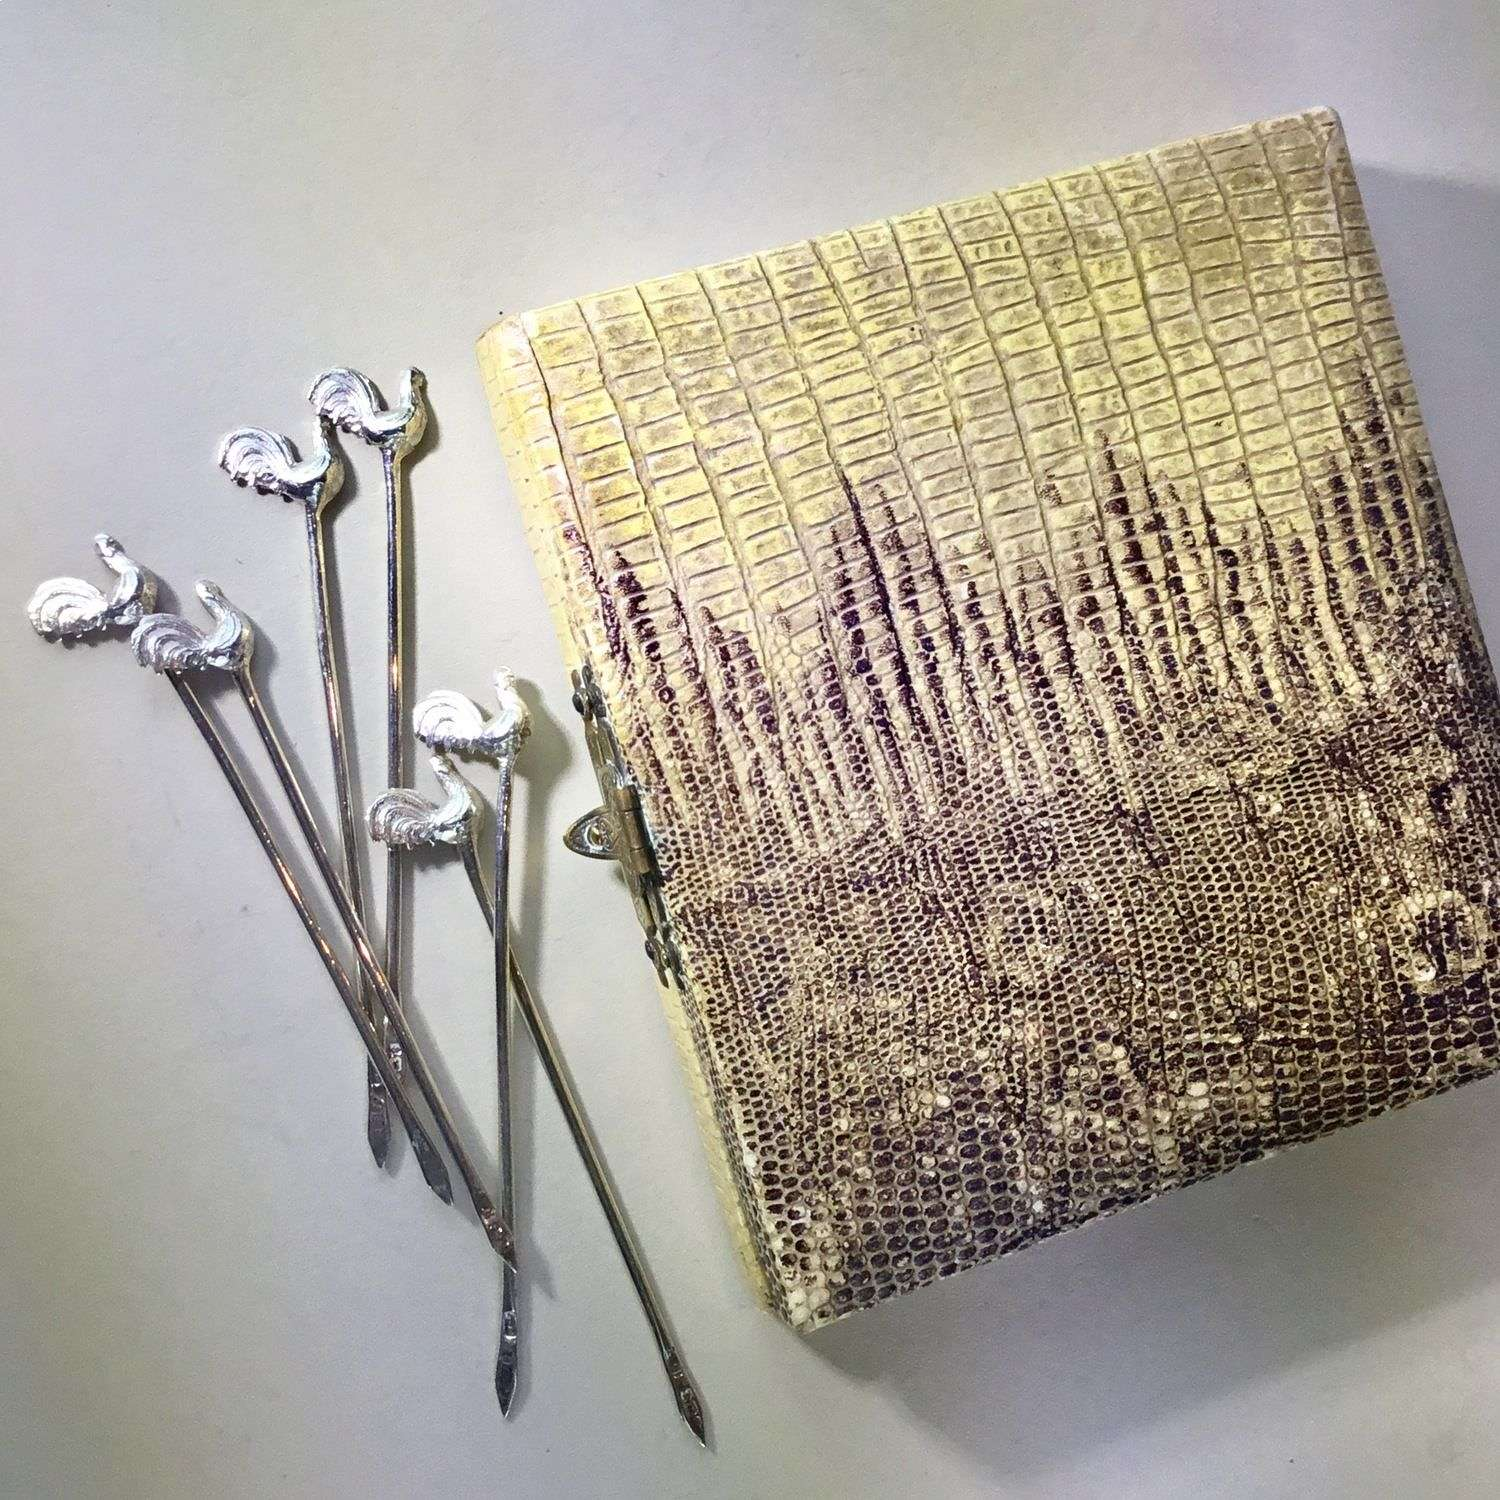 Art Deco silver cocktail sticks